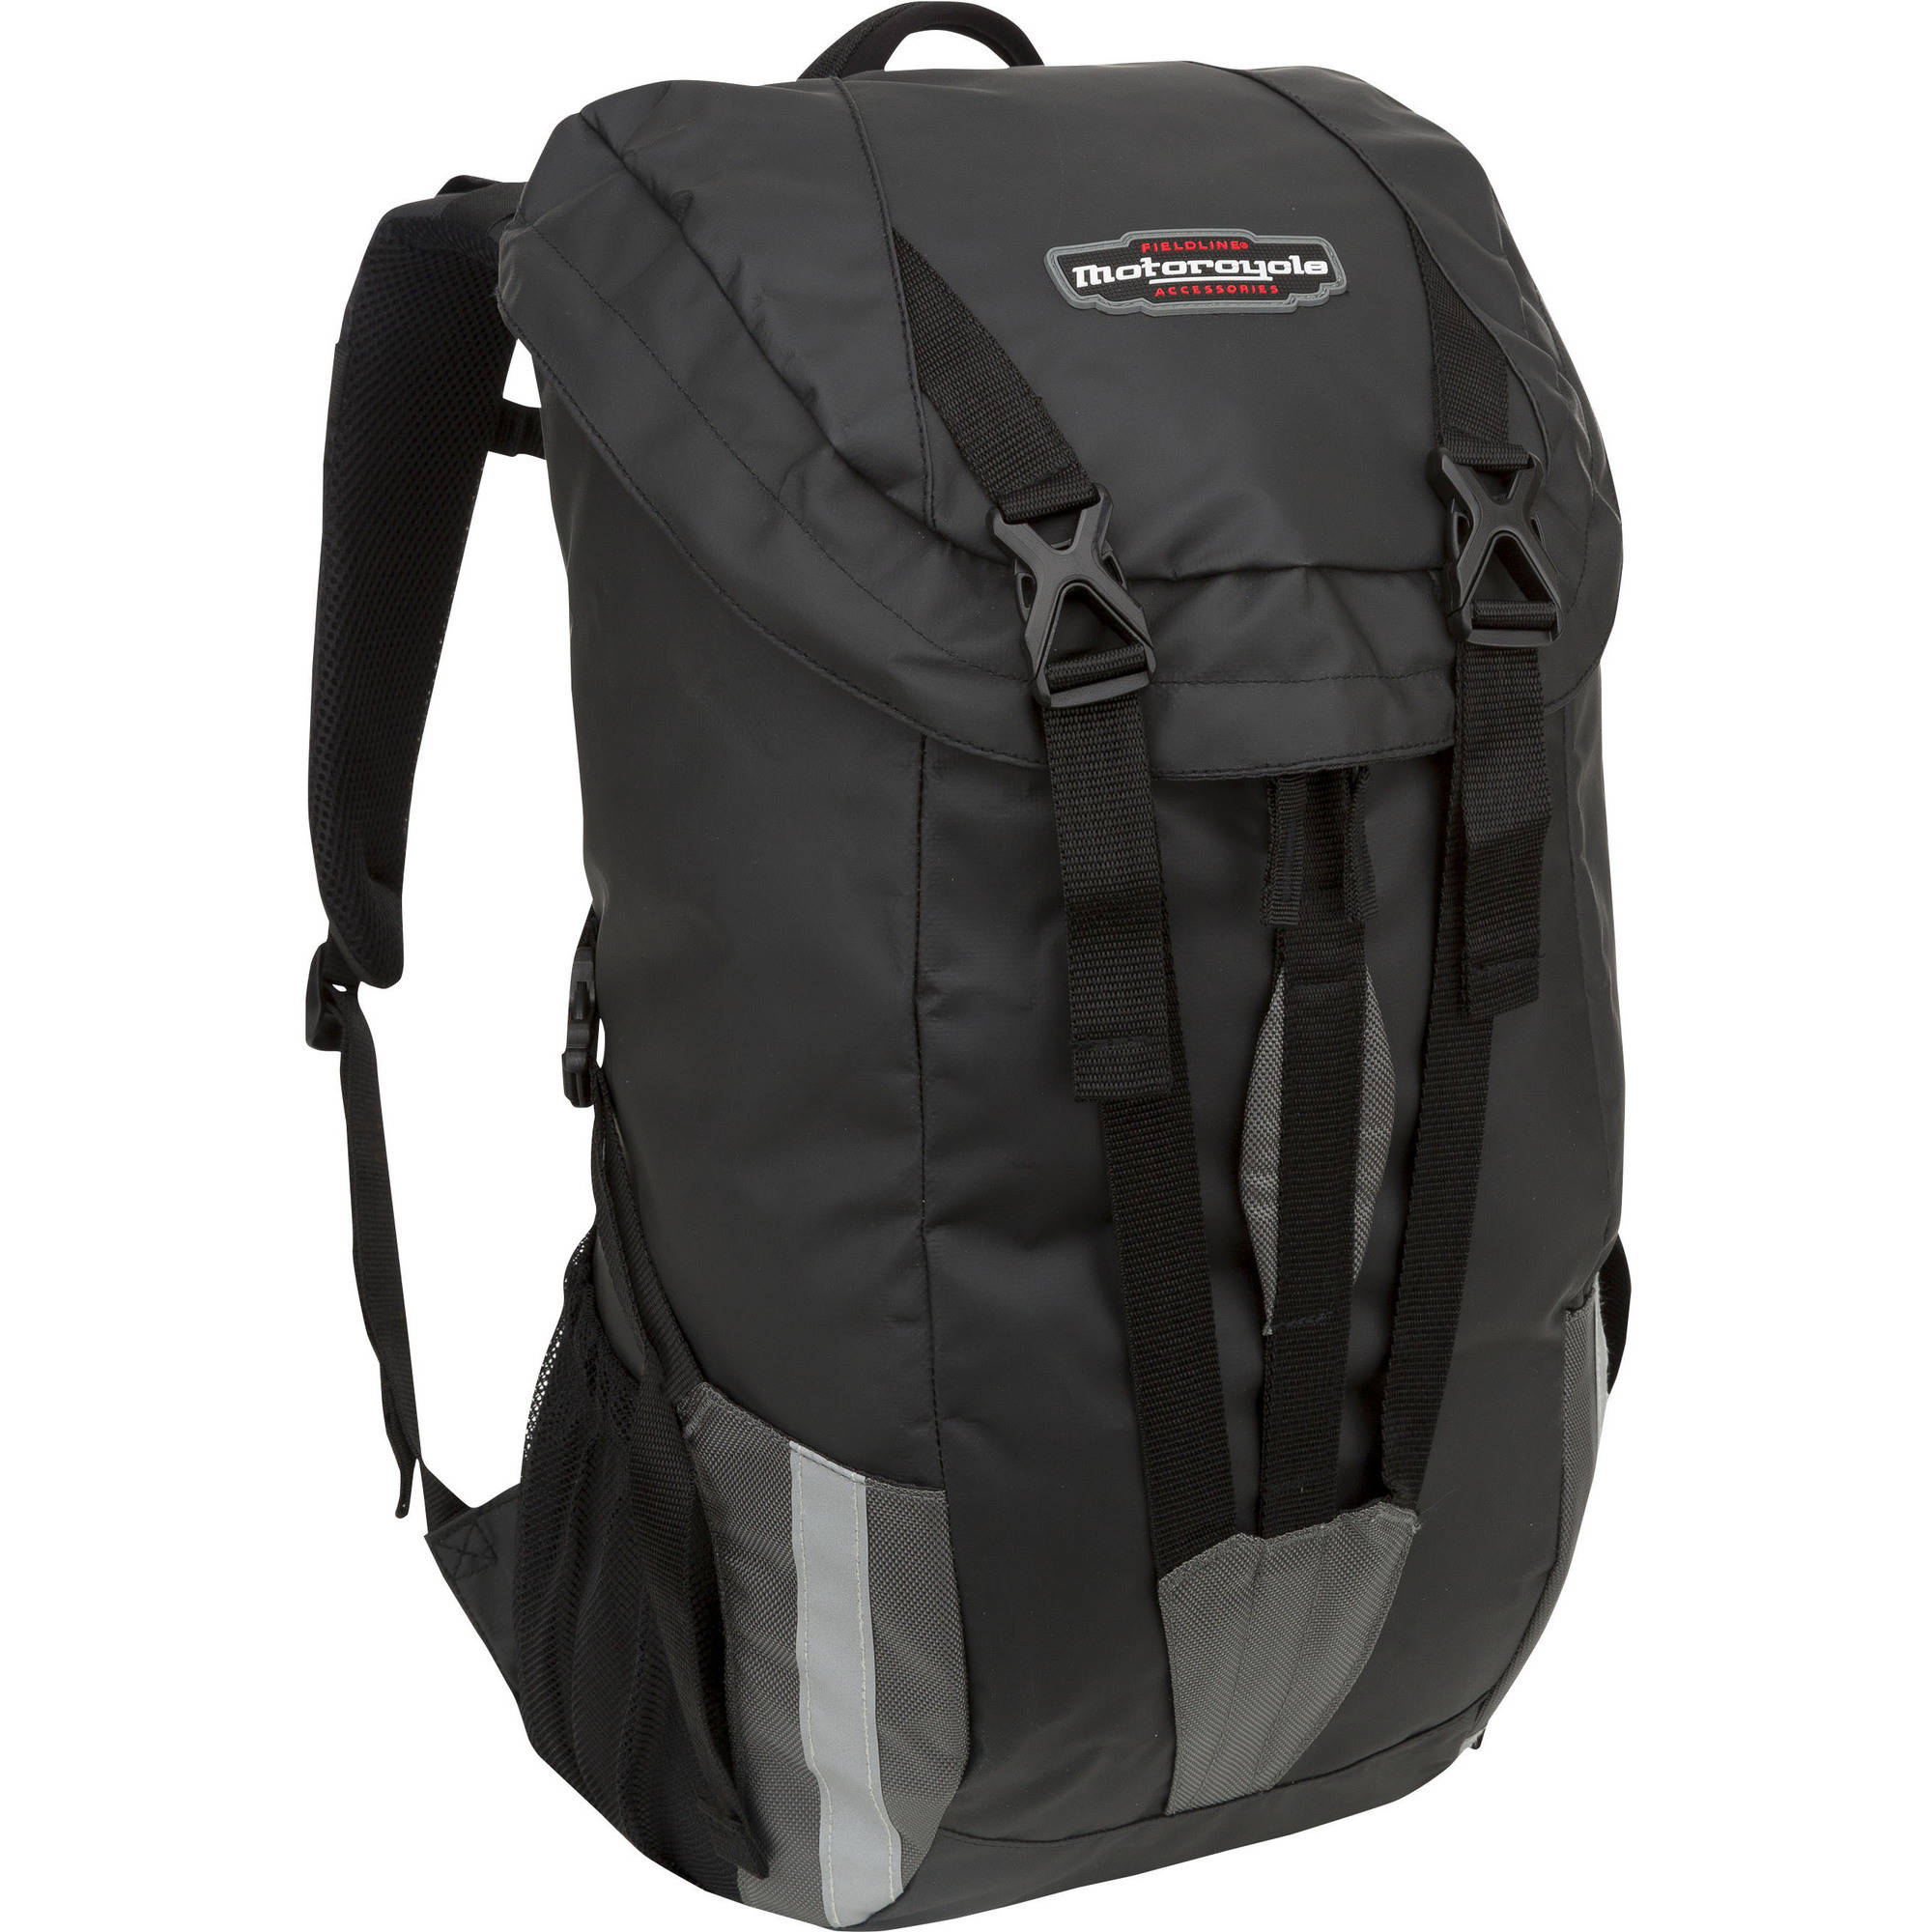 Fieldline Motorcycle All-Weather Backpack, Black - Walmart.com